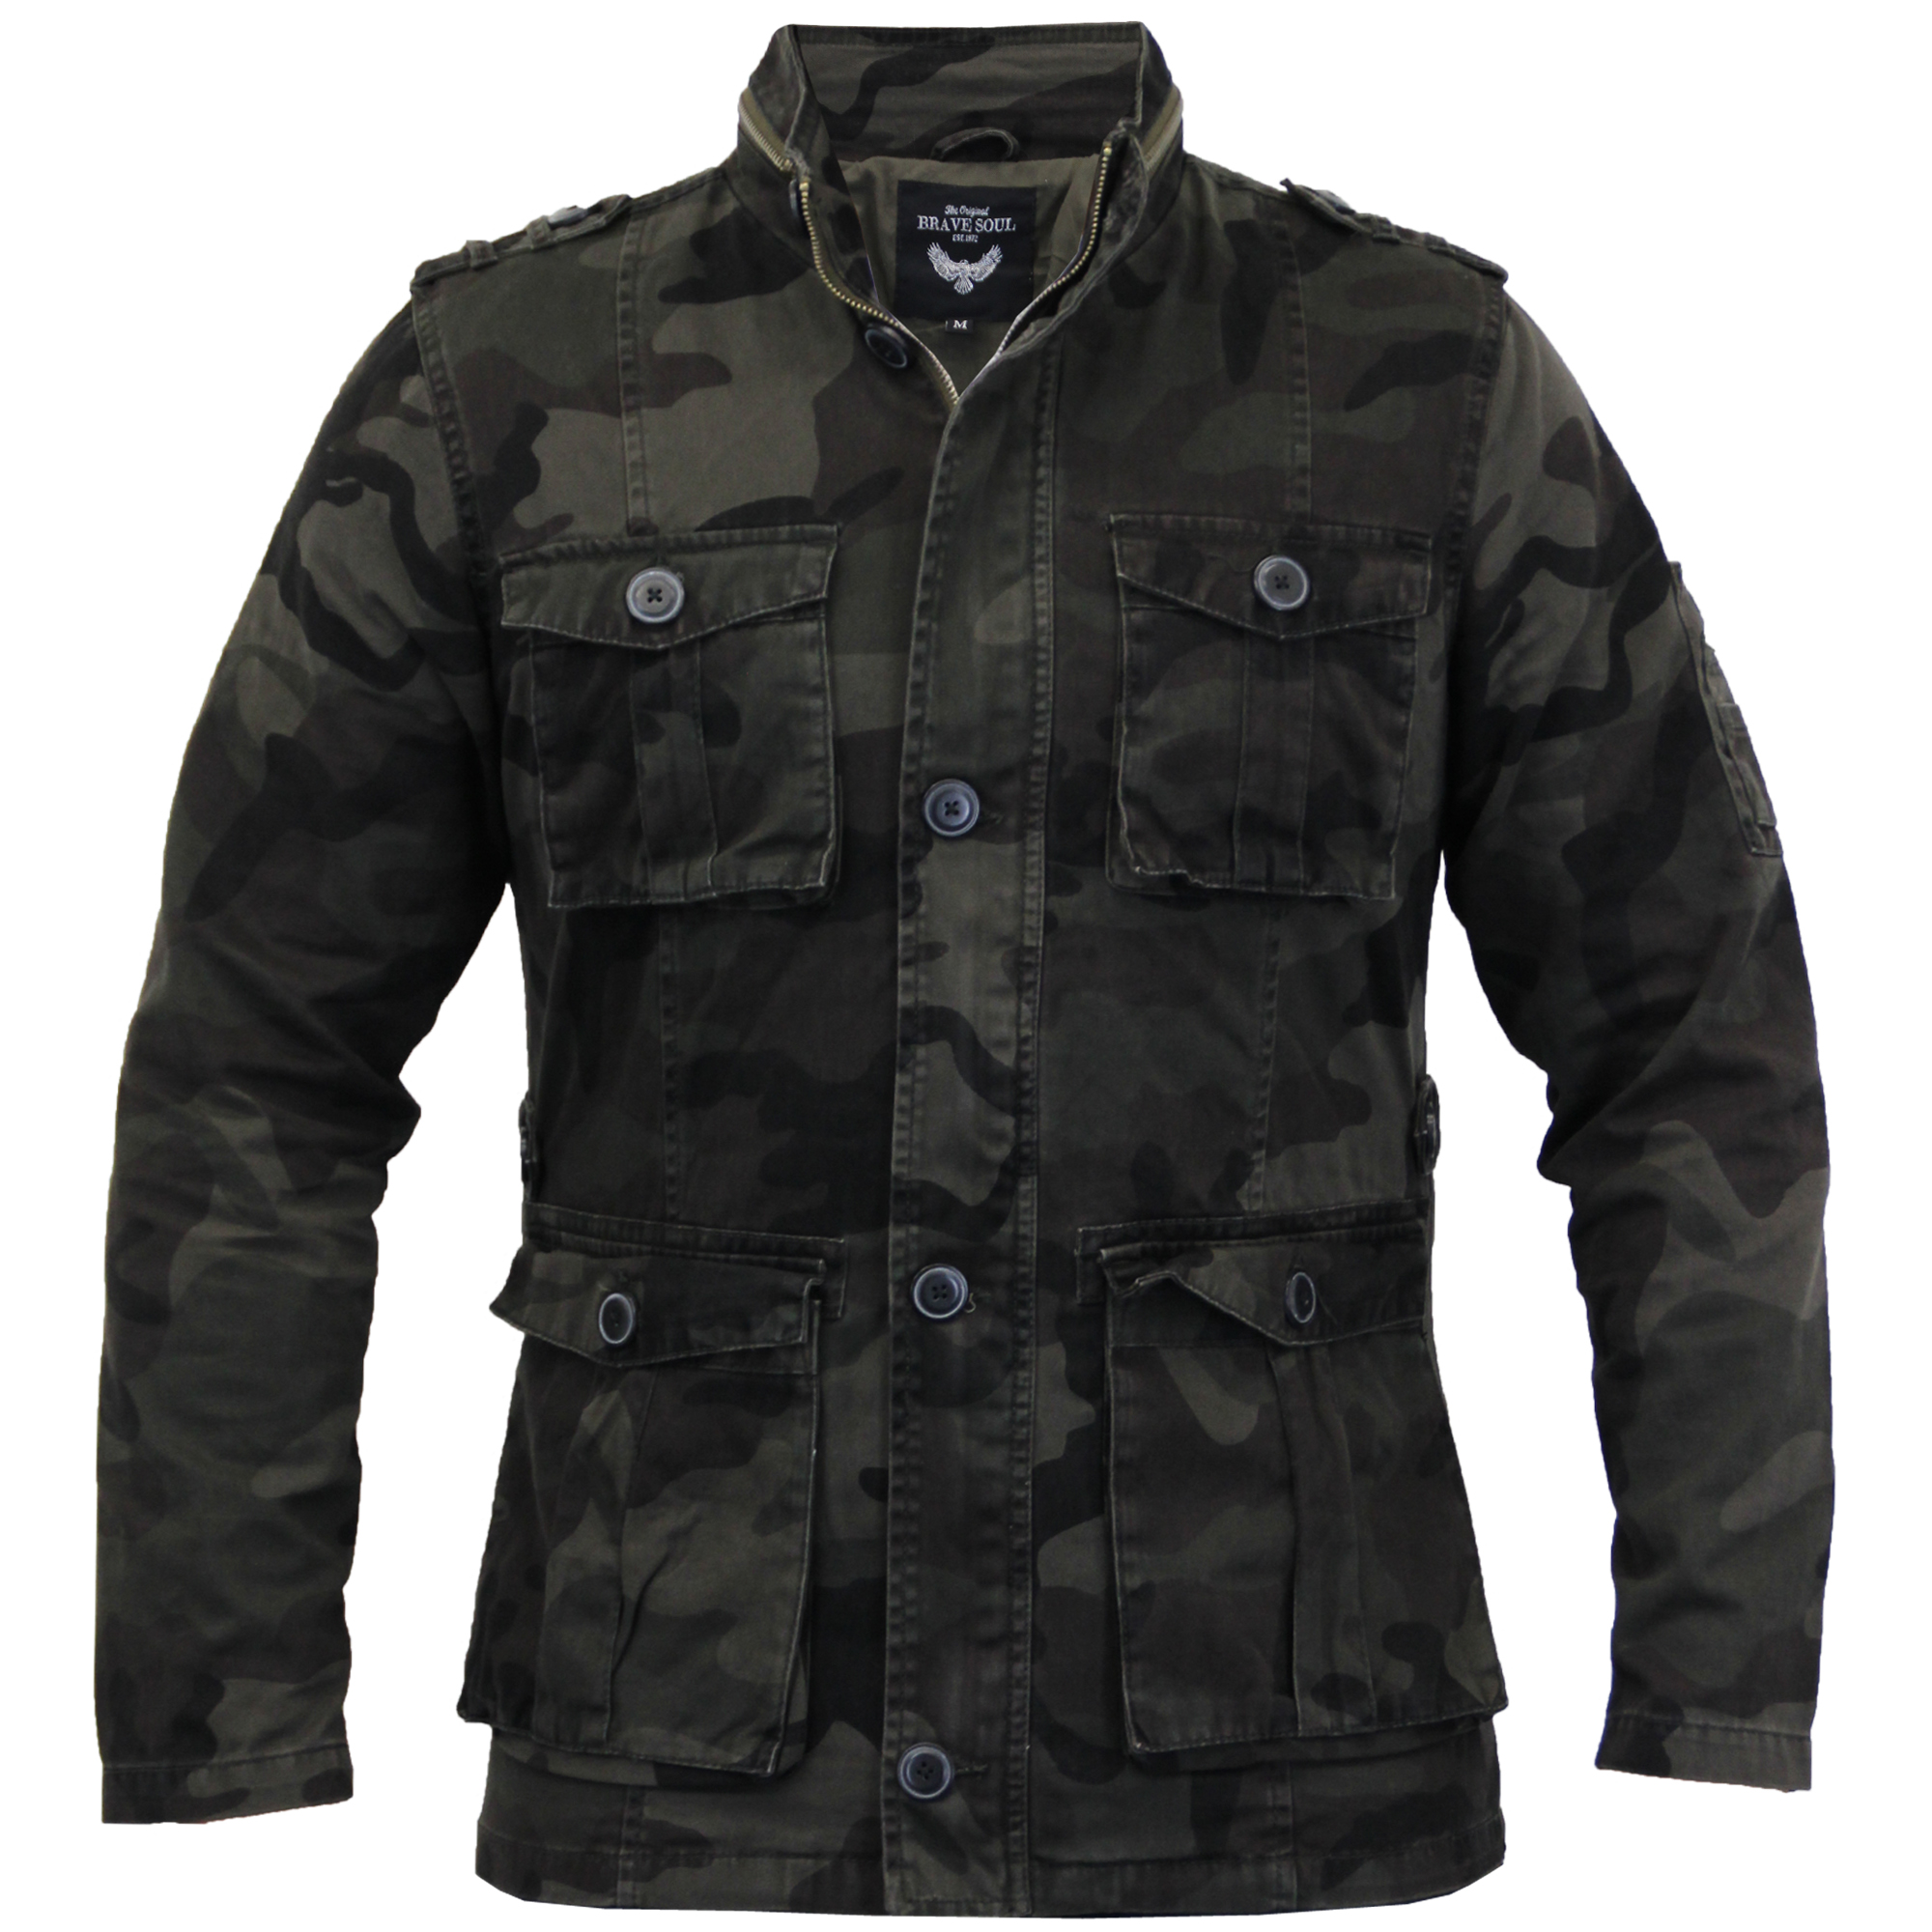 mens camouflage jacket brave soul coat military army epaulette summer casual new ebay. Black Bedroom Furniture Sets. Home Design Ideas